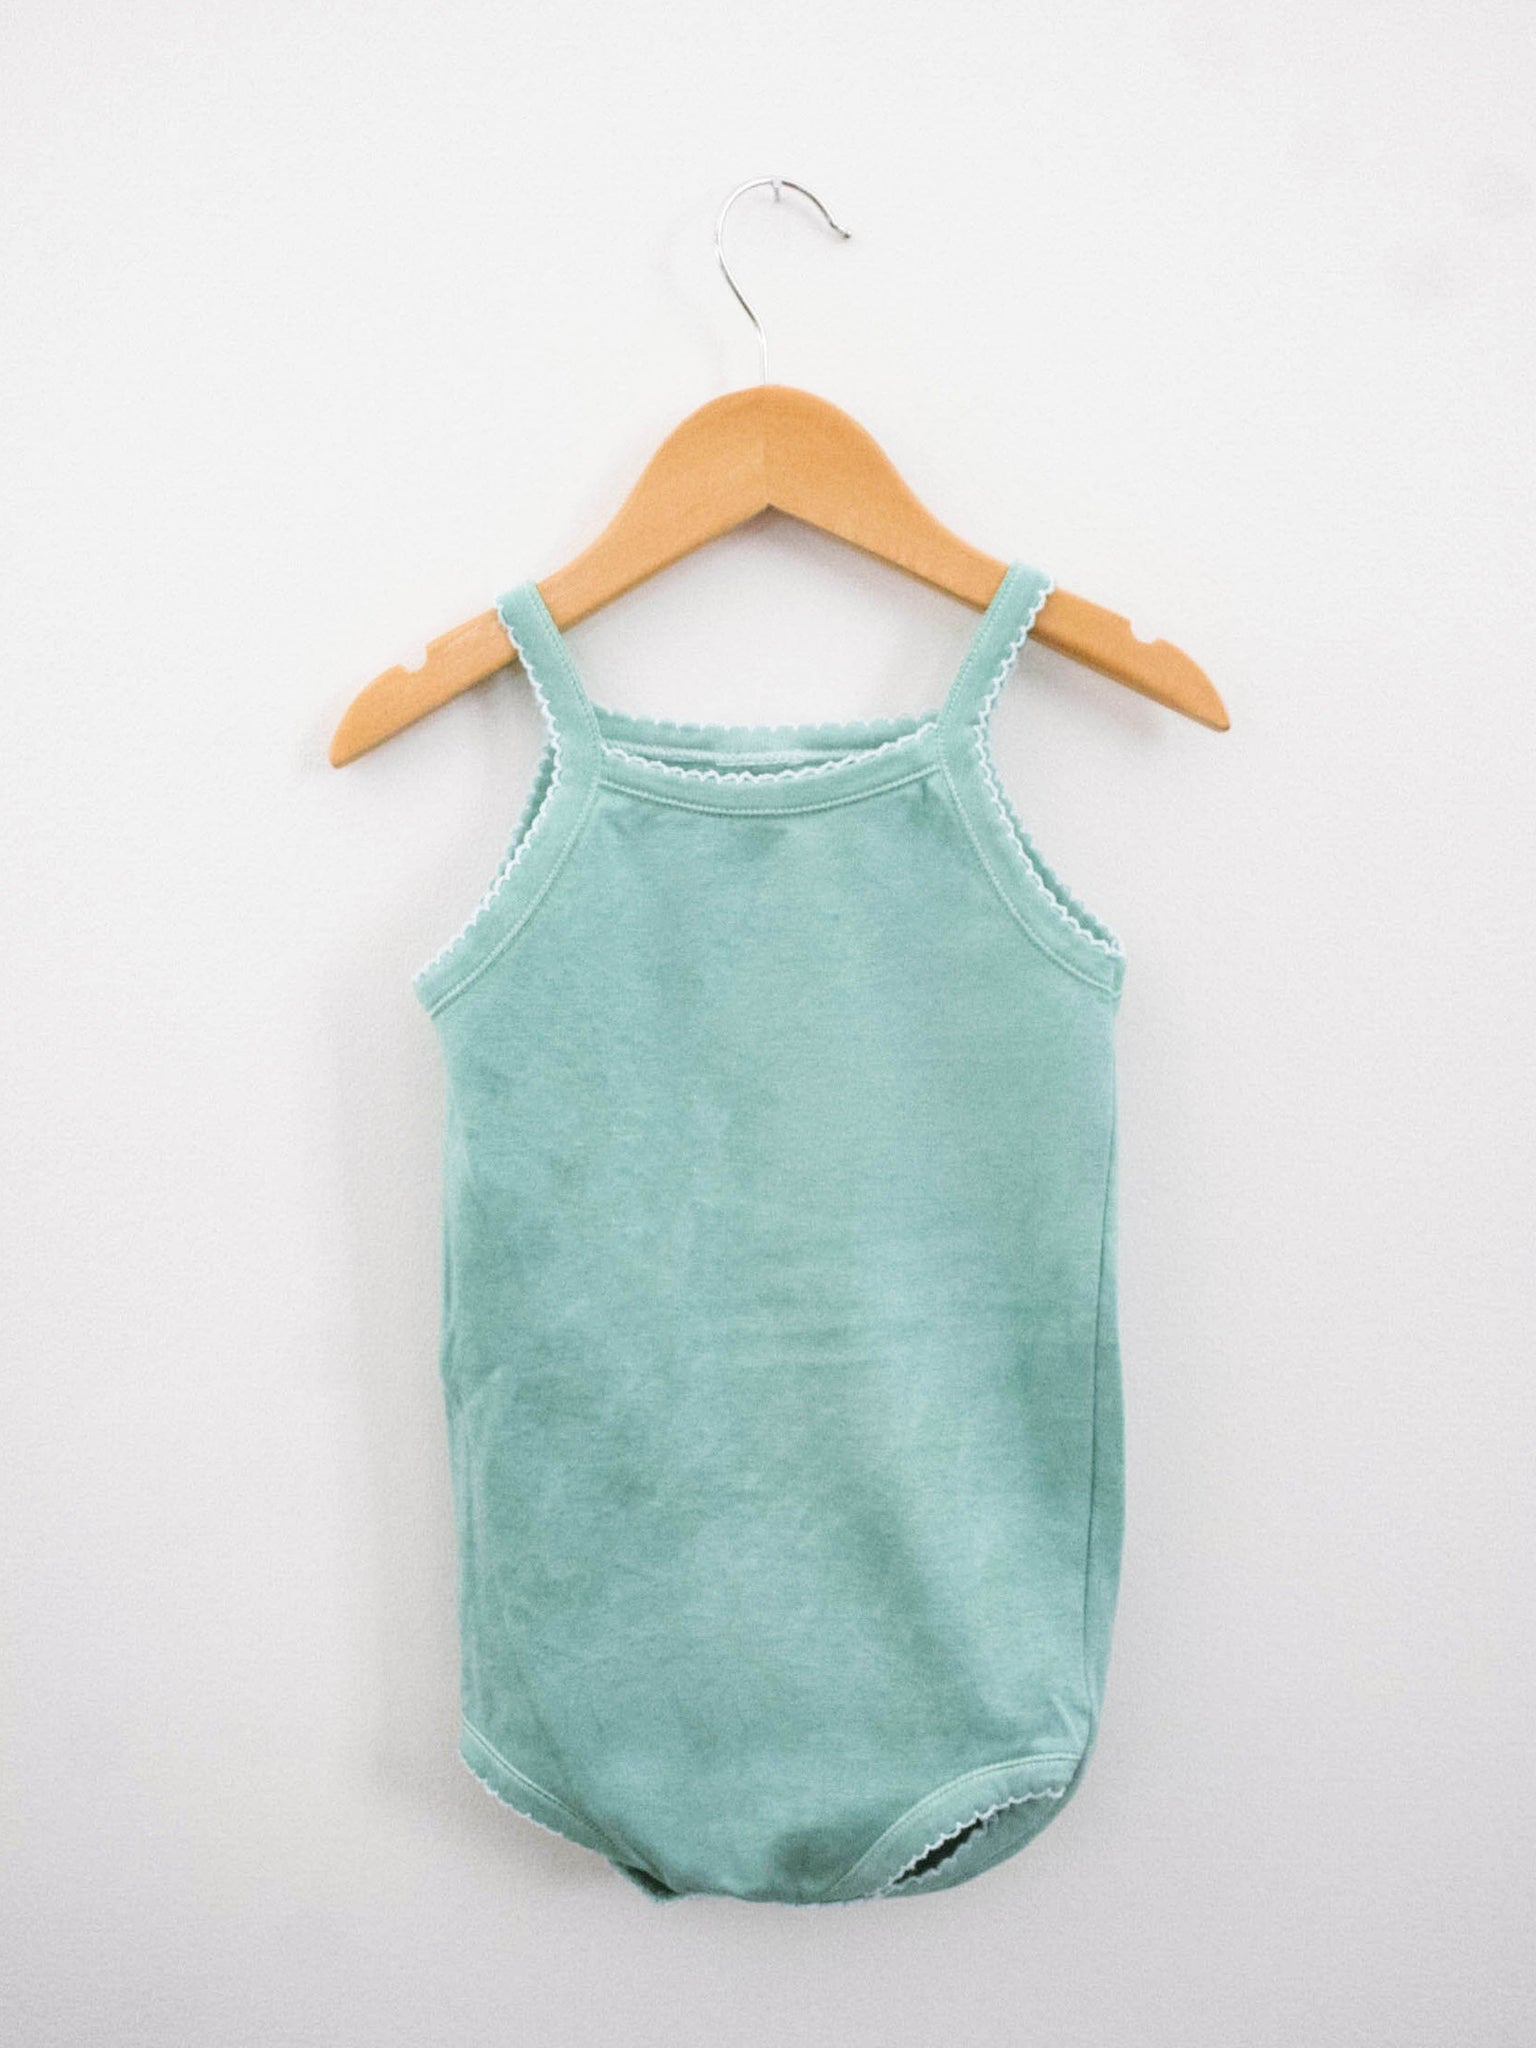 Camisole Bodysuit - Celadon - Little Adi + Co.